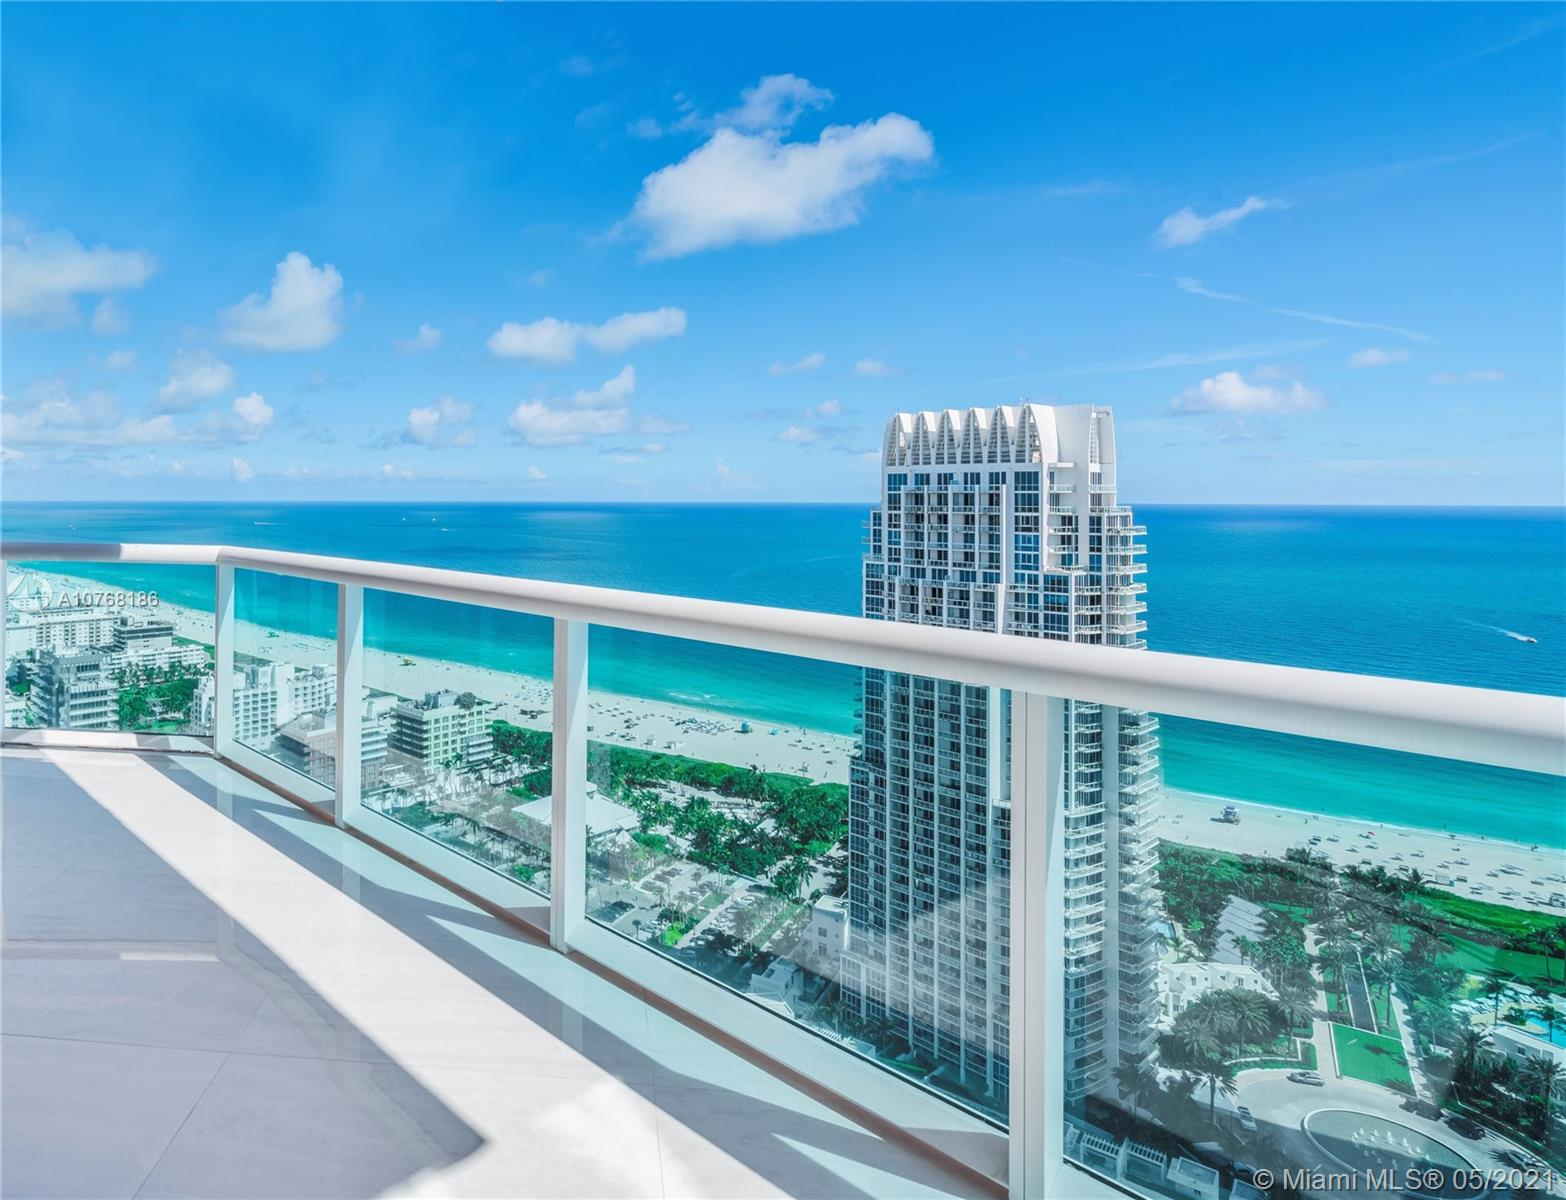 This extraordinary, contemporary-style smart home in the sky is an innovative work of art. This custom designed unit is brand new & fully furnished by iconic Italian luxury brand Visionnaire. Comprised of 2 units meticulously combined to form one impeccable 4,800 sf residence with breathtaking ocean, bay, Miami skyline & sunrise & sunset views. Features include, a flow-through layout, white onyx gloss floors, Vegan stingray leather finishes on the doors & walls, marble bathrooms, Manooi chandeliers, wet bar w/ Rolls Royce style ceiling lighting, Crestron controls & security camera's throughout, gourmet kitchen w/ Miele & Viking appliances & a principal suite fit for royalty with a custom Pink Quartz closet, floating tub overlooking the water, retractable projector & 180 degree views